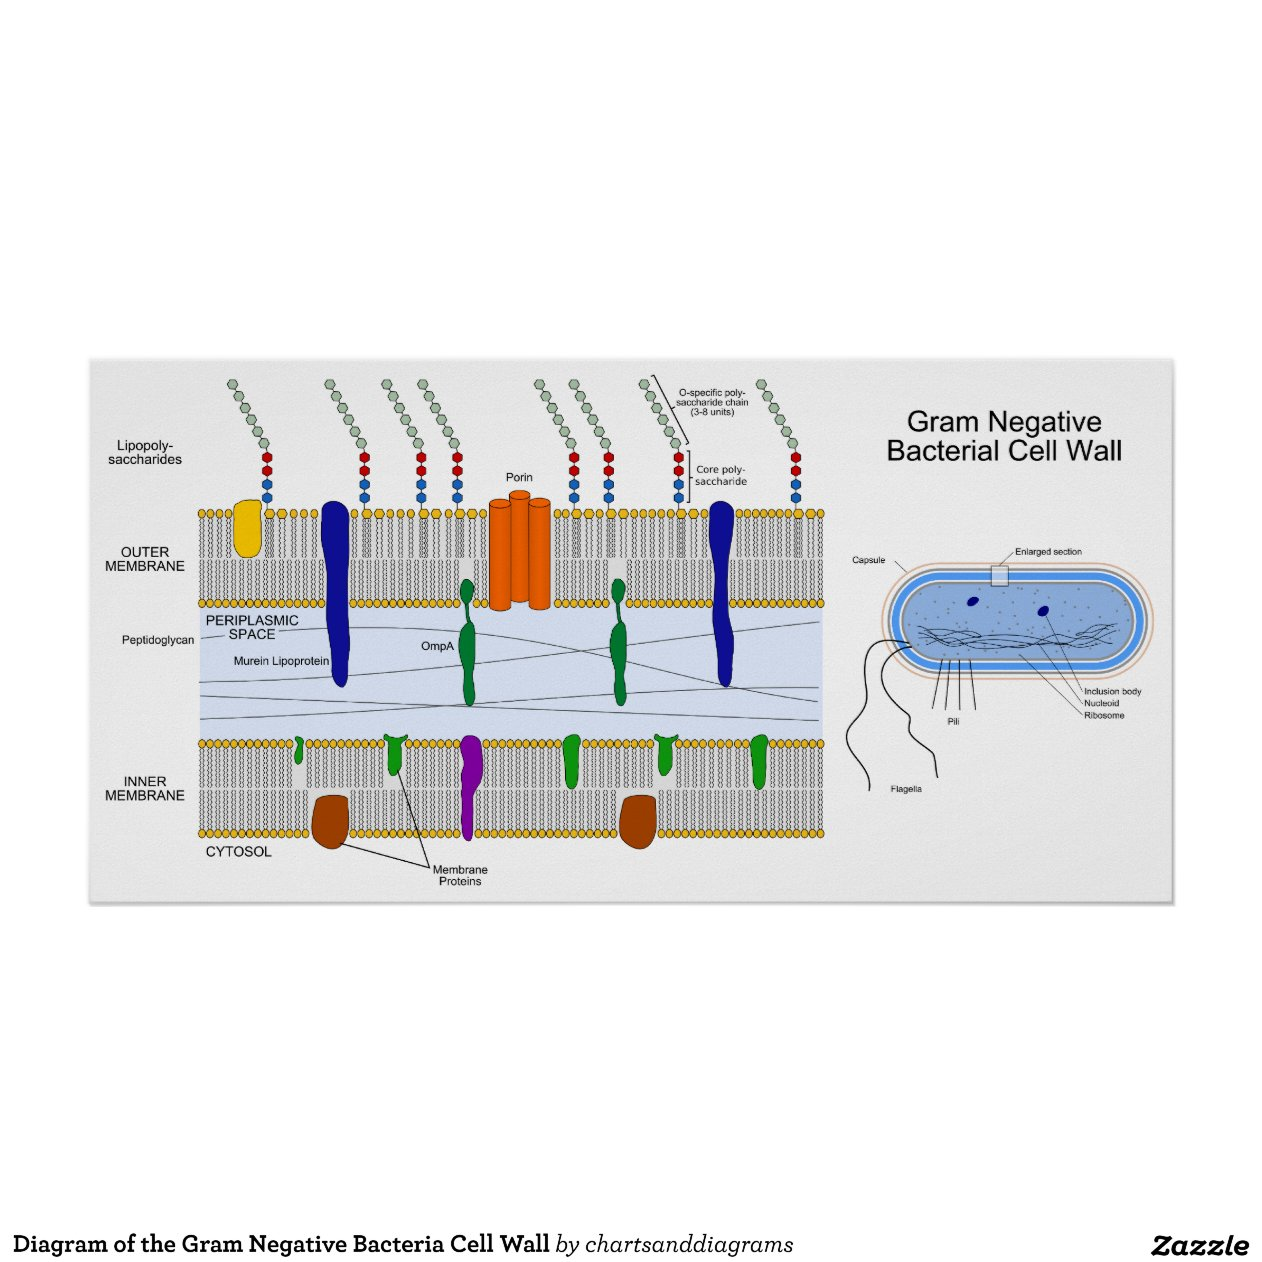 gram negative cell wall diagram how to wire a starter switch of the bacteria poster